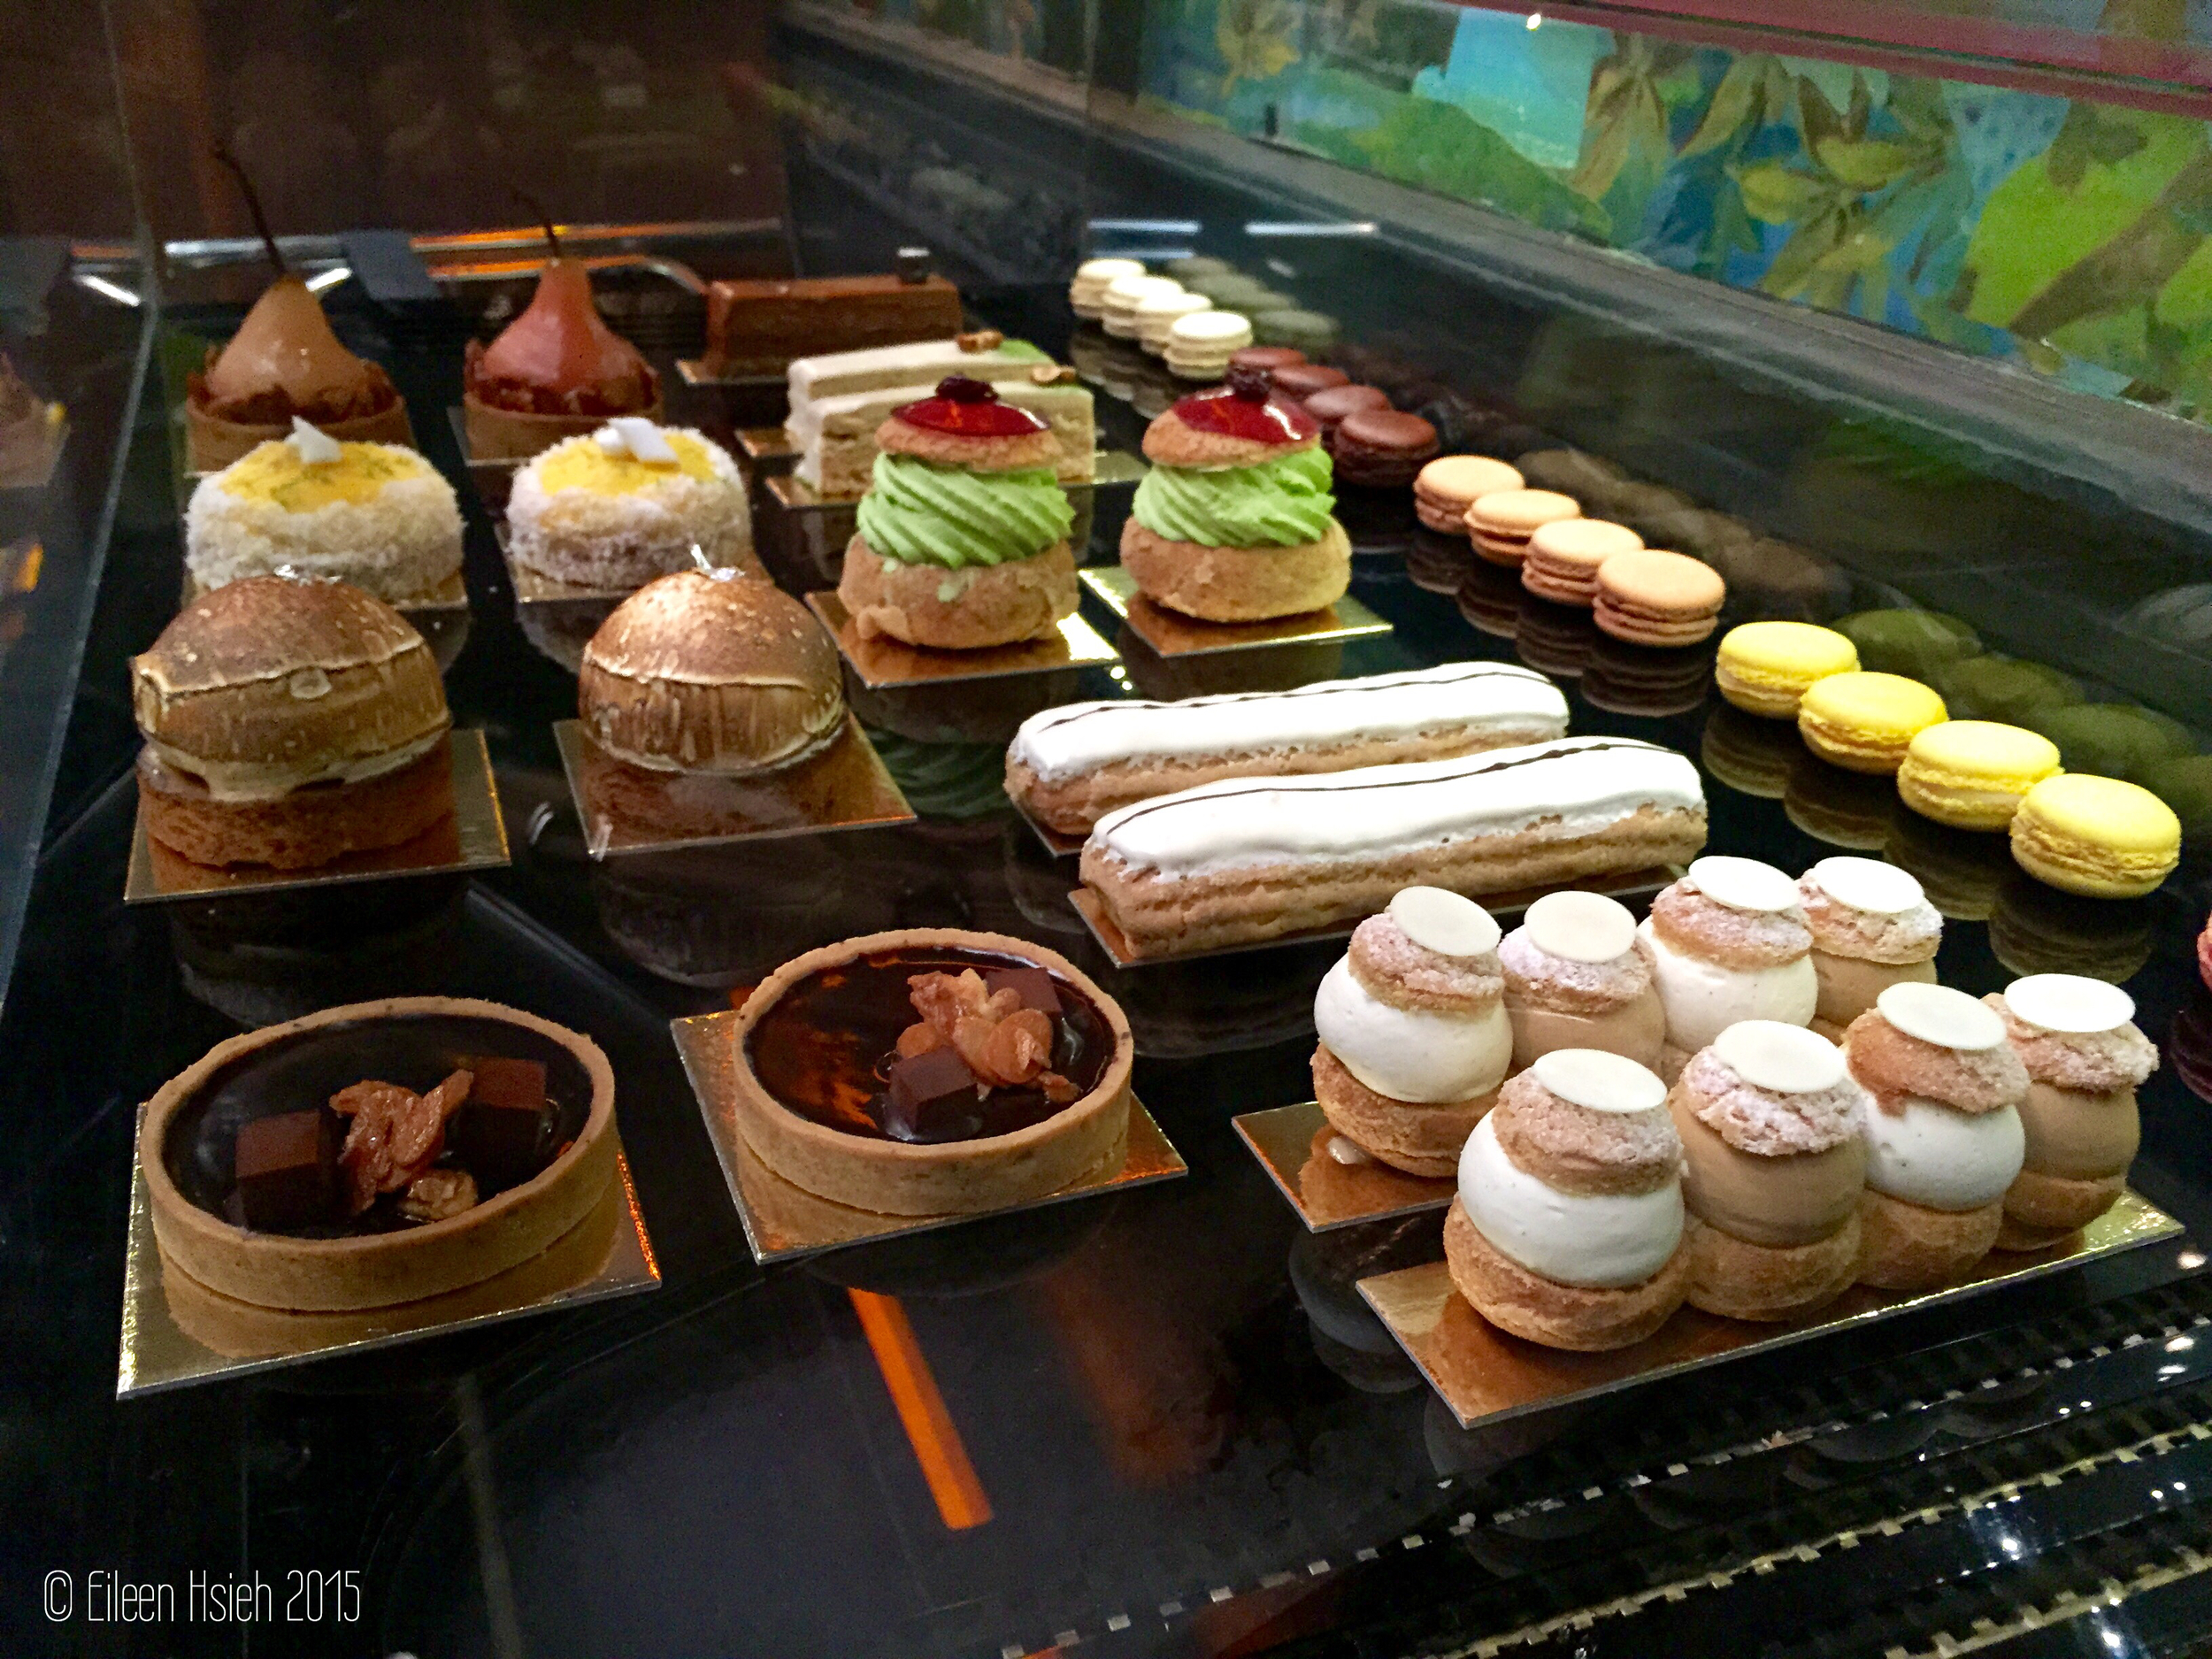 Tempting pastries at the Glade. 夢幻森林裡誘人的點心。 © Eileen Hsieh